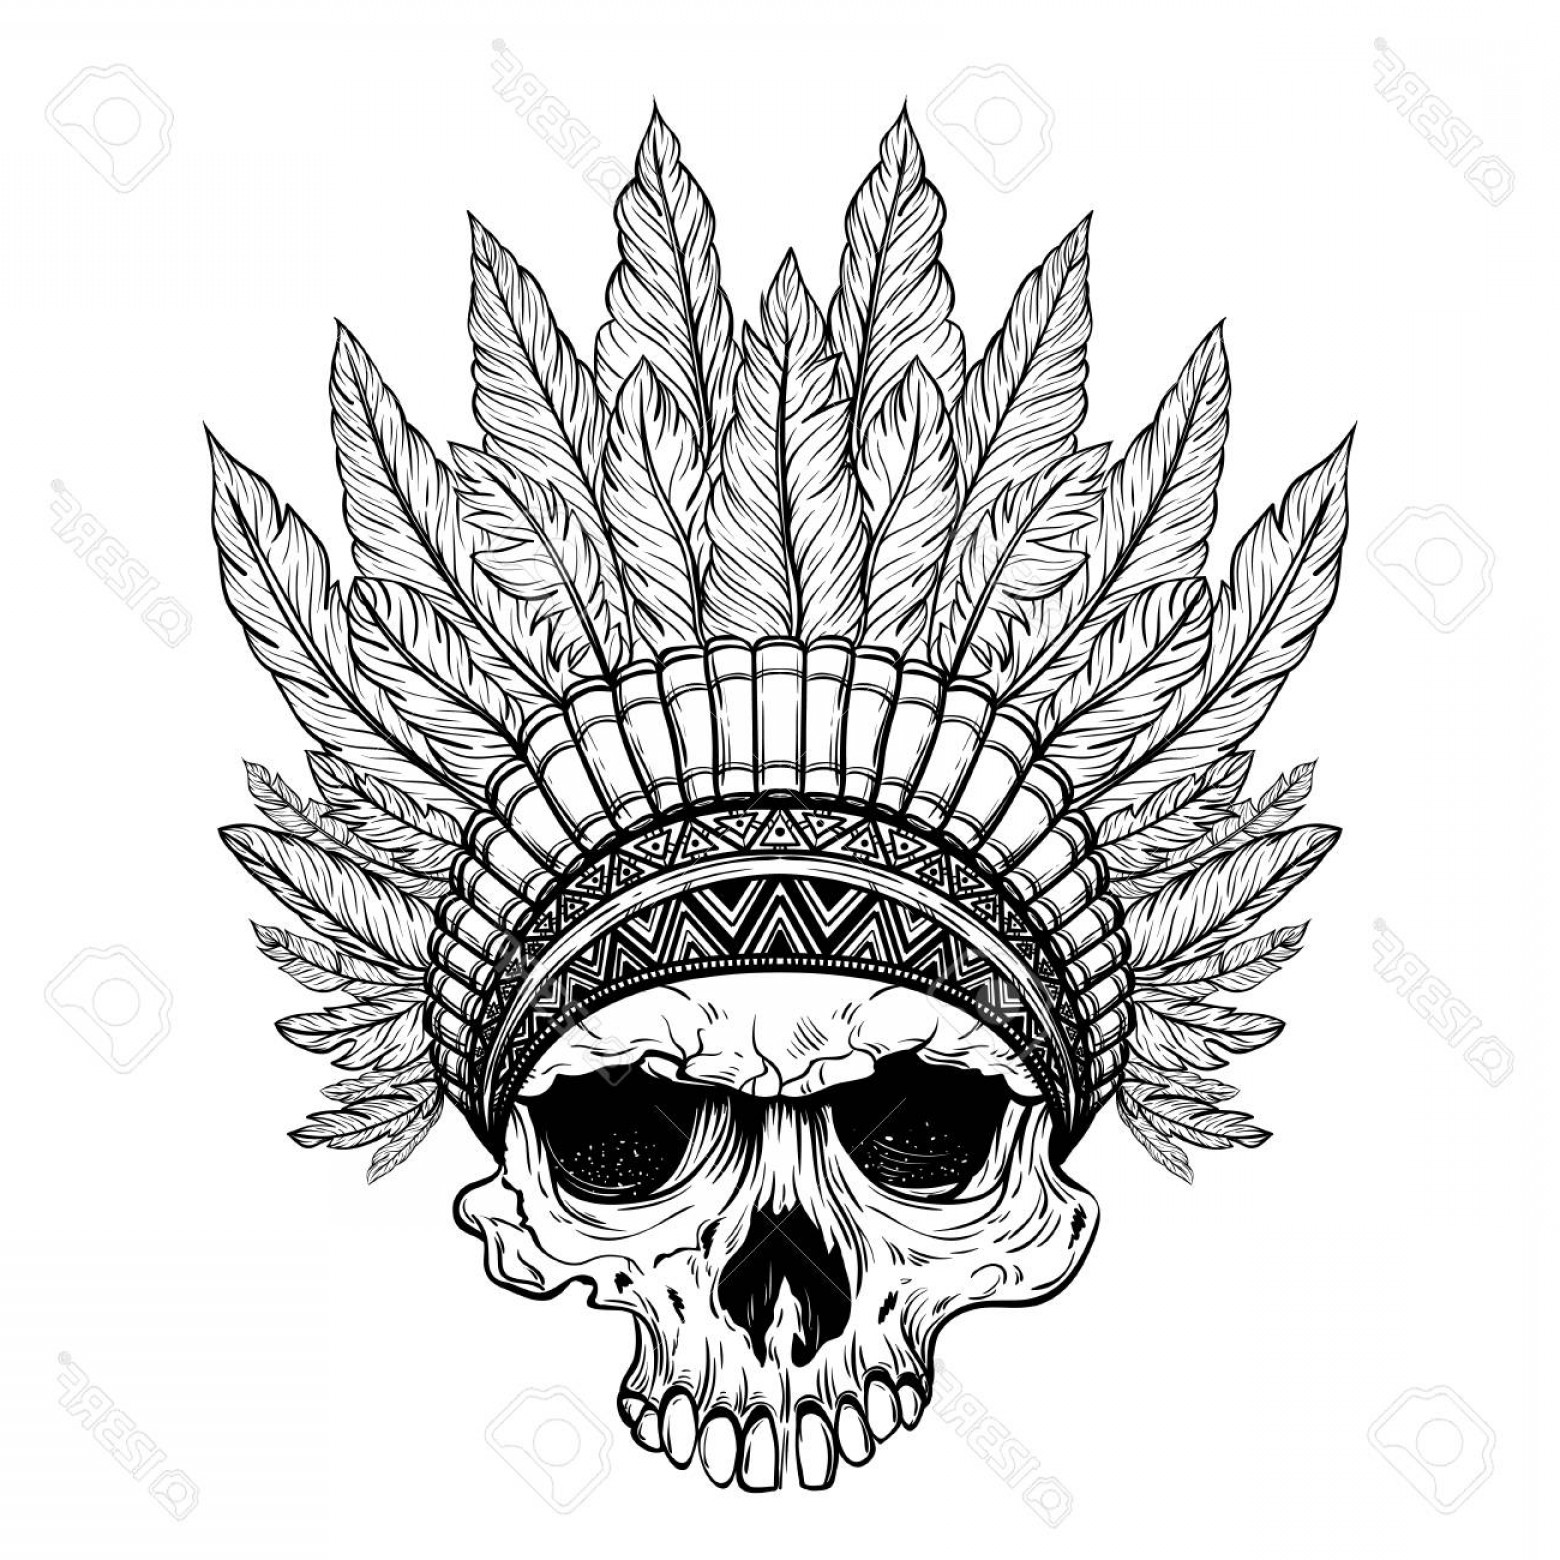 1560x1560 Photostock Vector Hand Drawn Native American Indian Headdress With